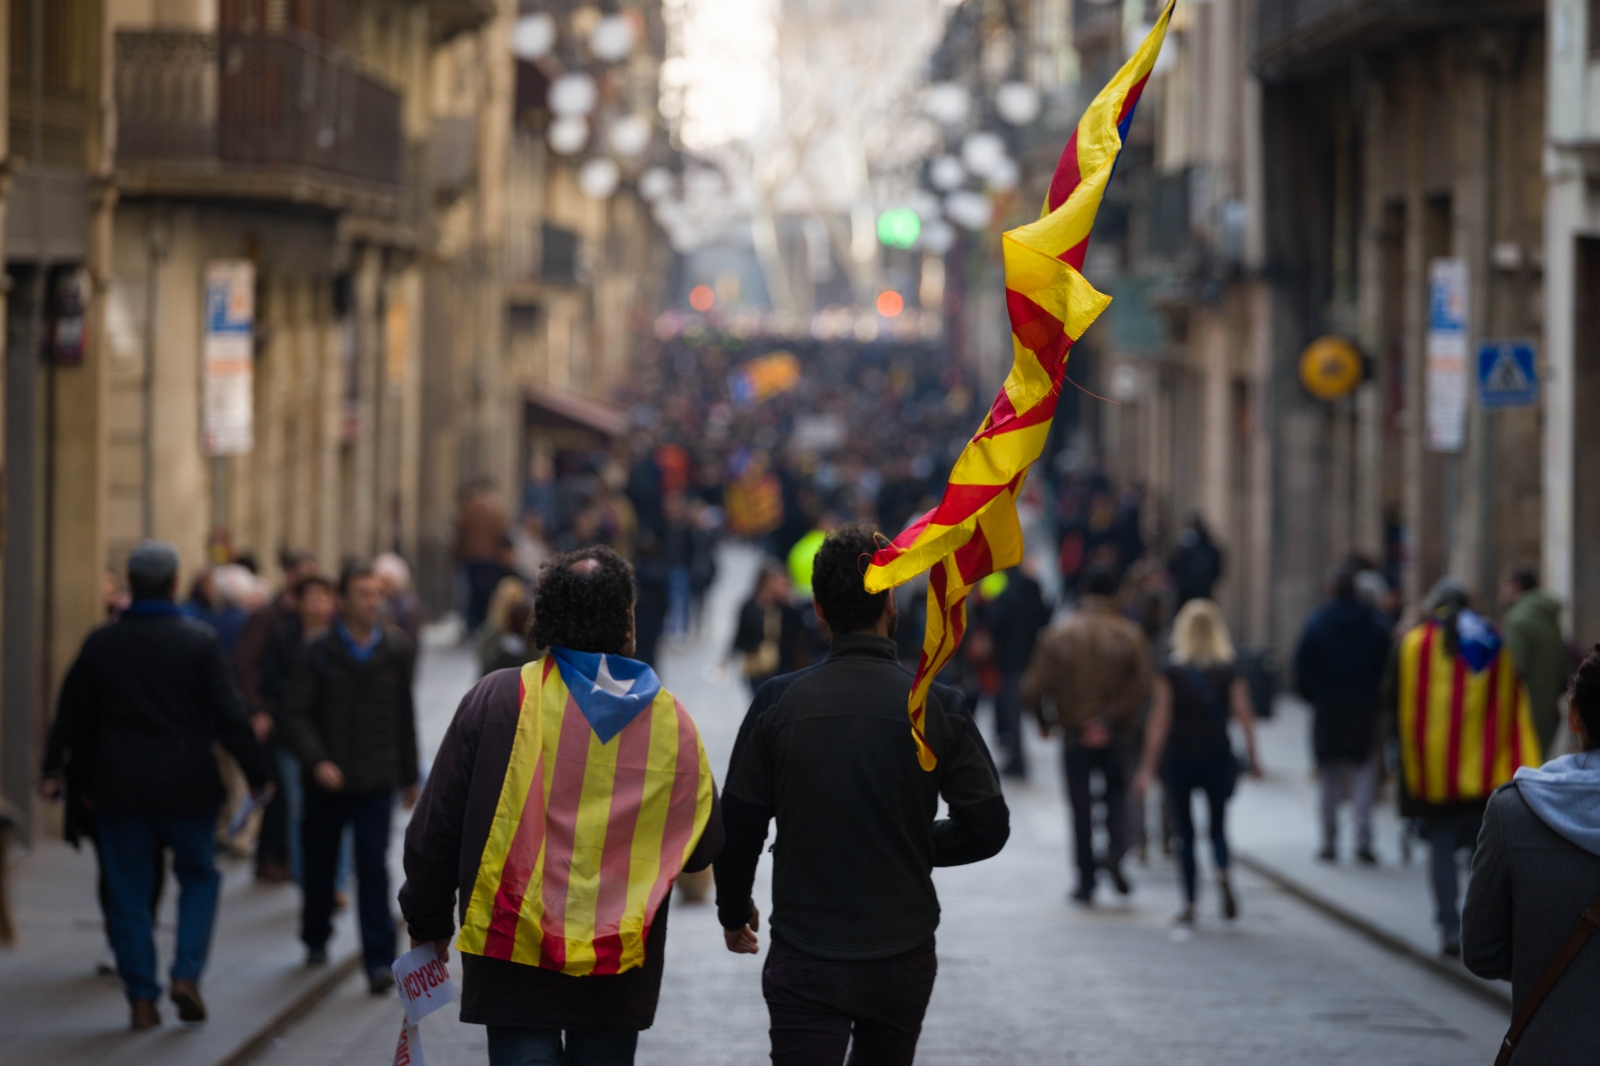 Two protesters join the demonstration of the general strike in Carrer de Ferran, Barcelona. Strikers all over Catalonia were protesting the ongoing Supreme Court trial of their separatist leaders. Barcelona, February 21, 2019.